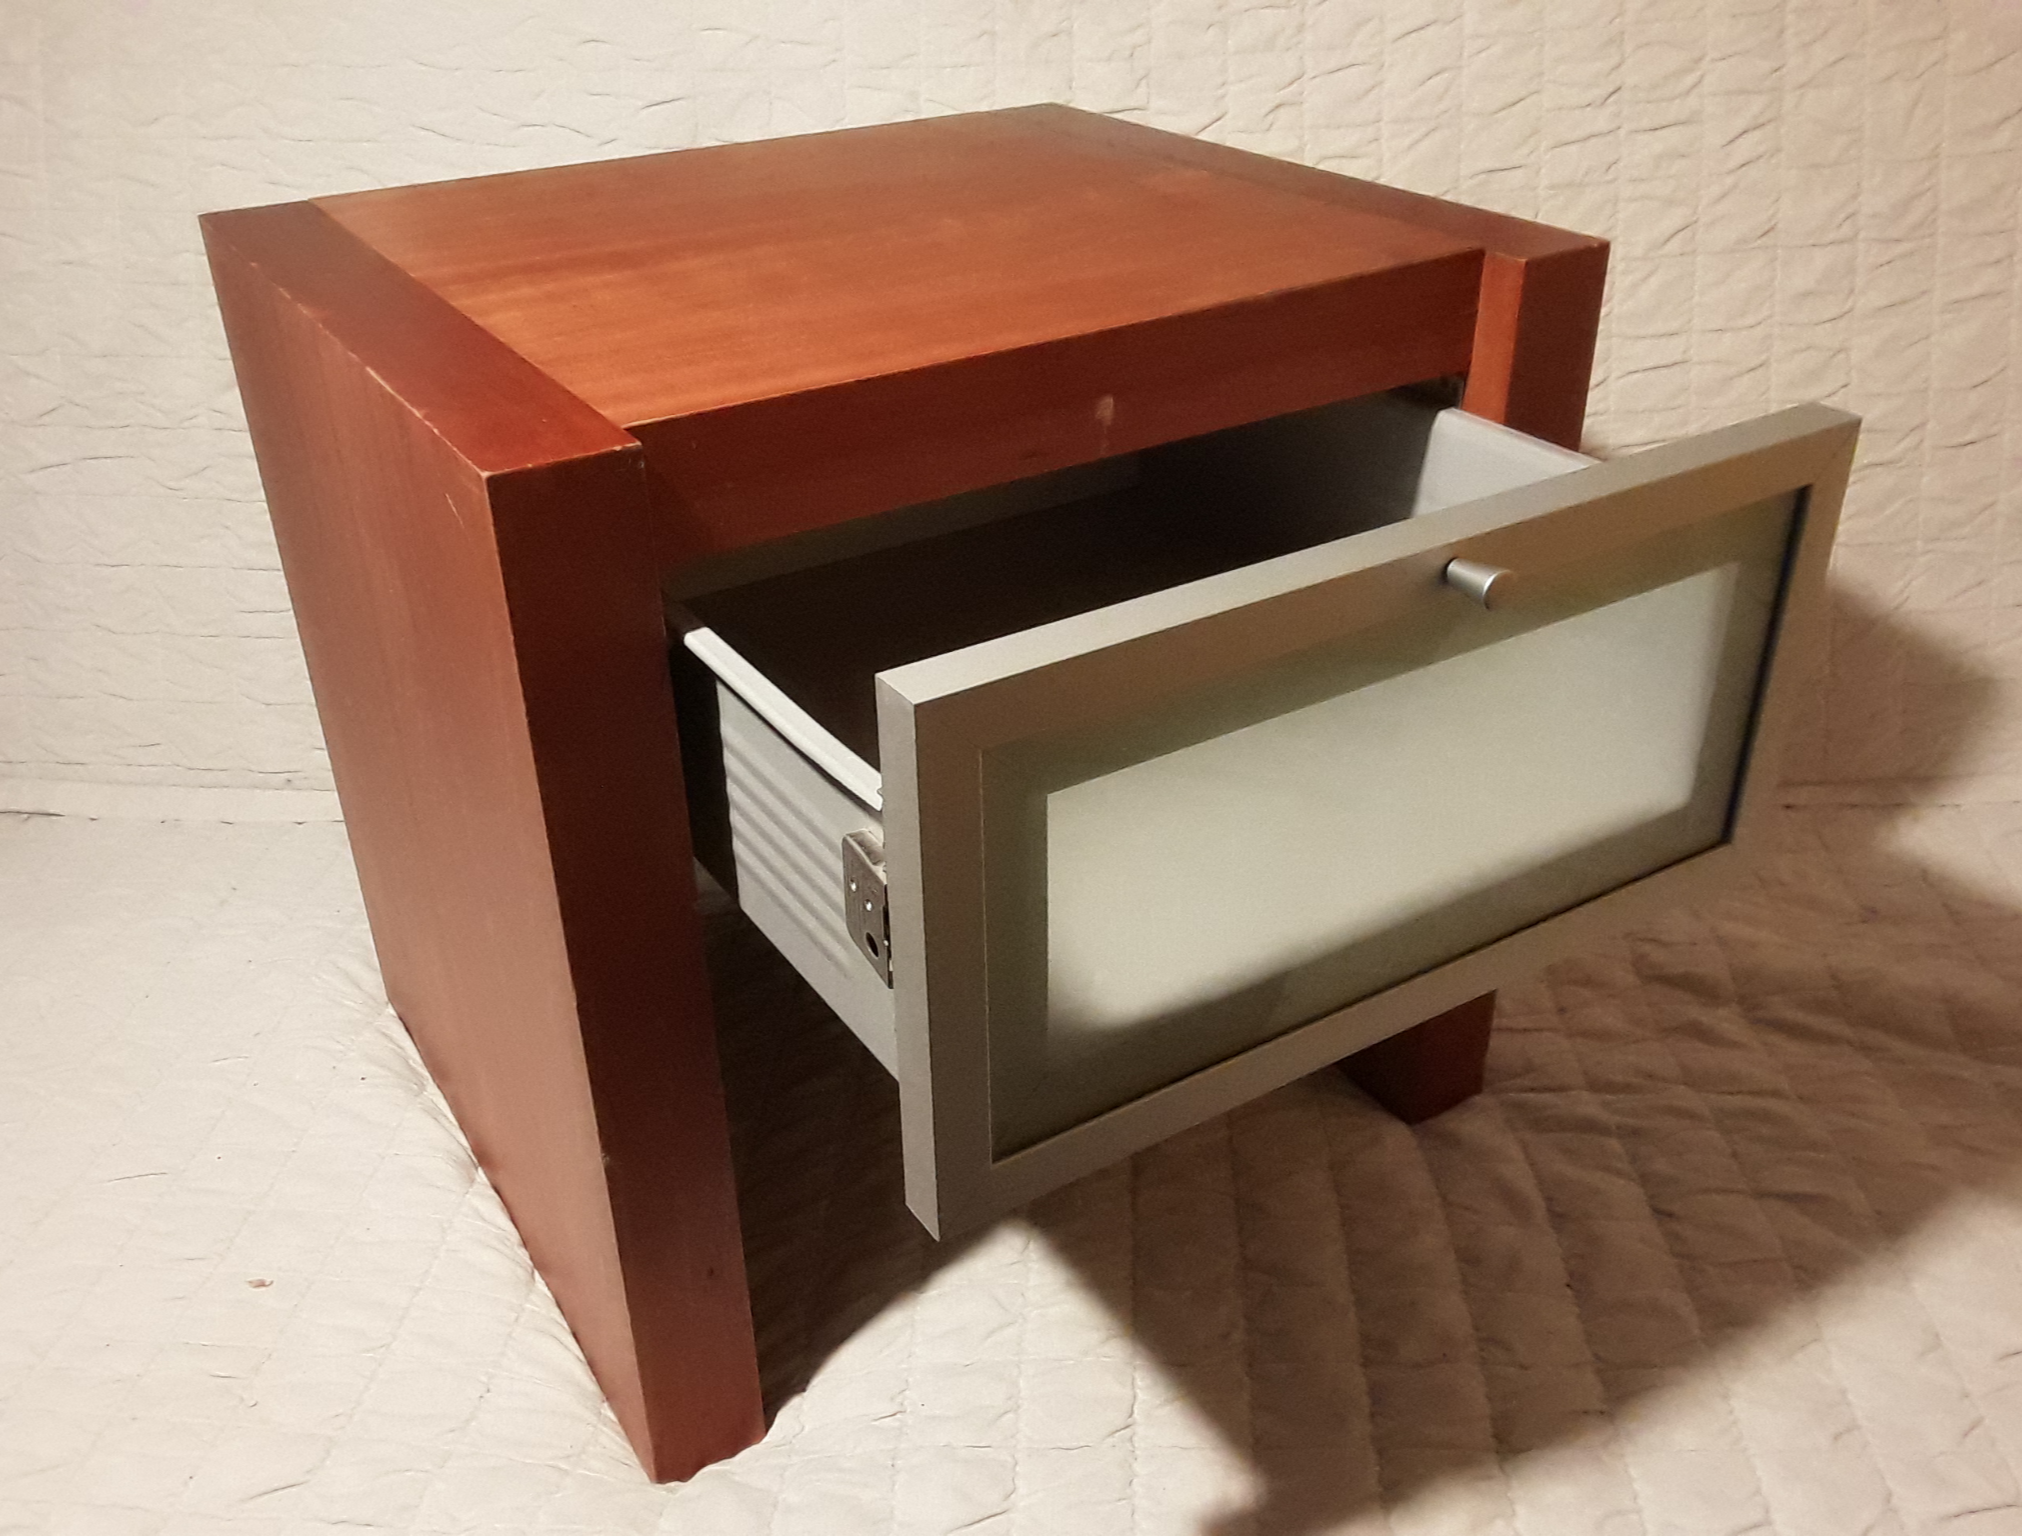 HEAVY BEDSIDE TABLE OAK/METAL w FROSTED GLASS EFFECT DRAWER **FREE DELIVERY IN LONDON**